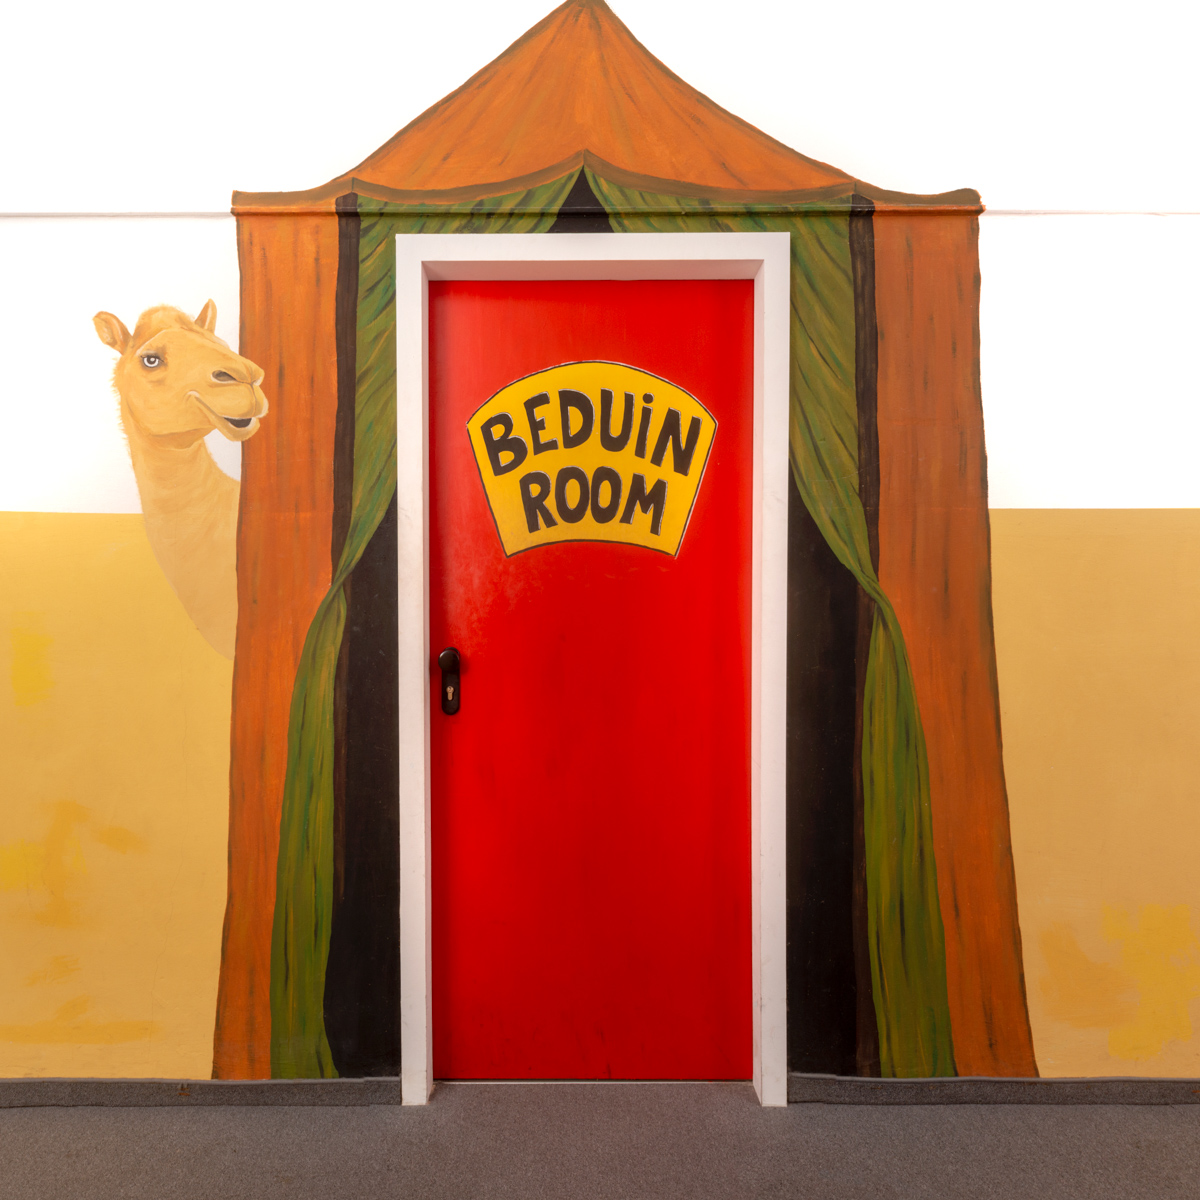 the beduin room door from the outside